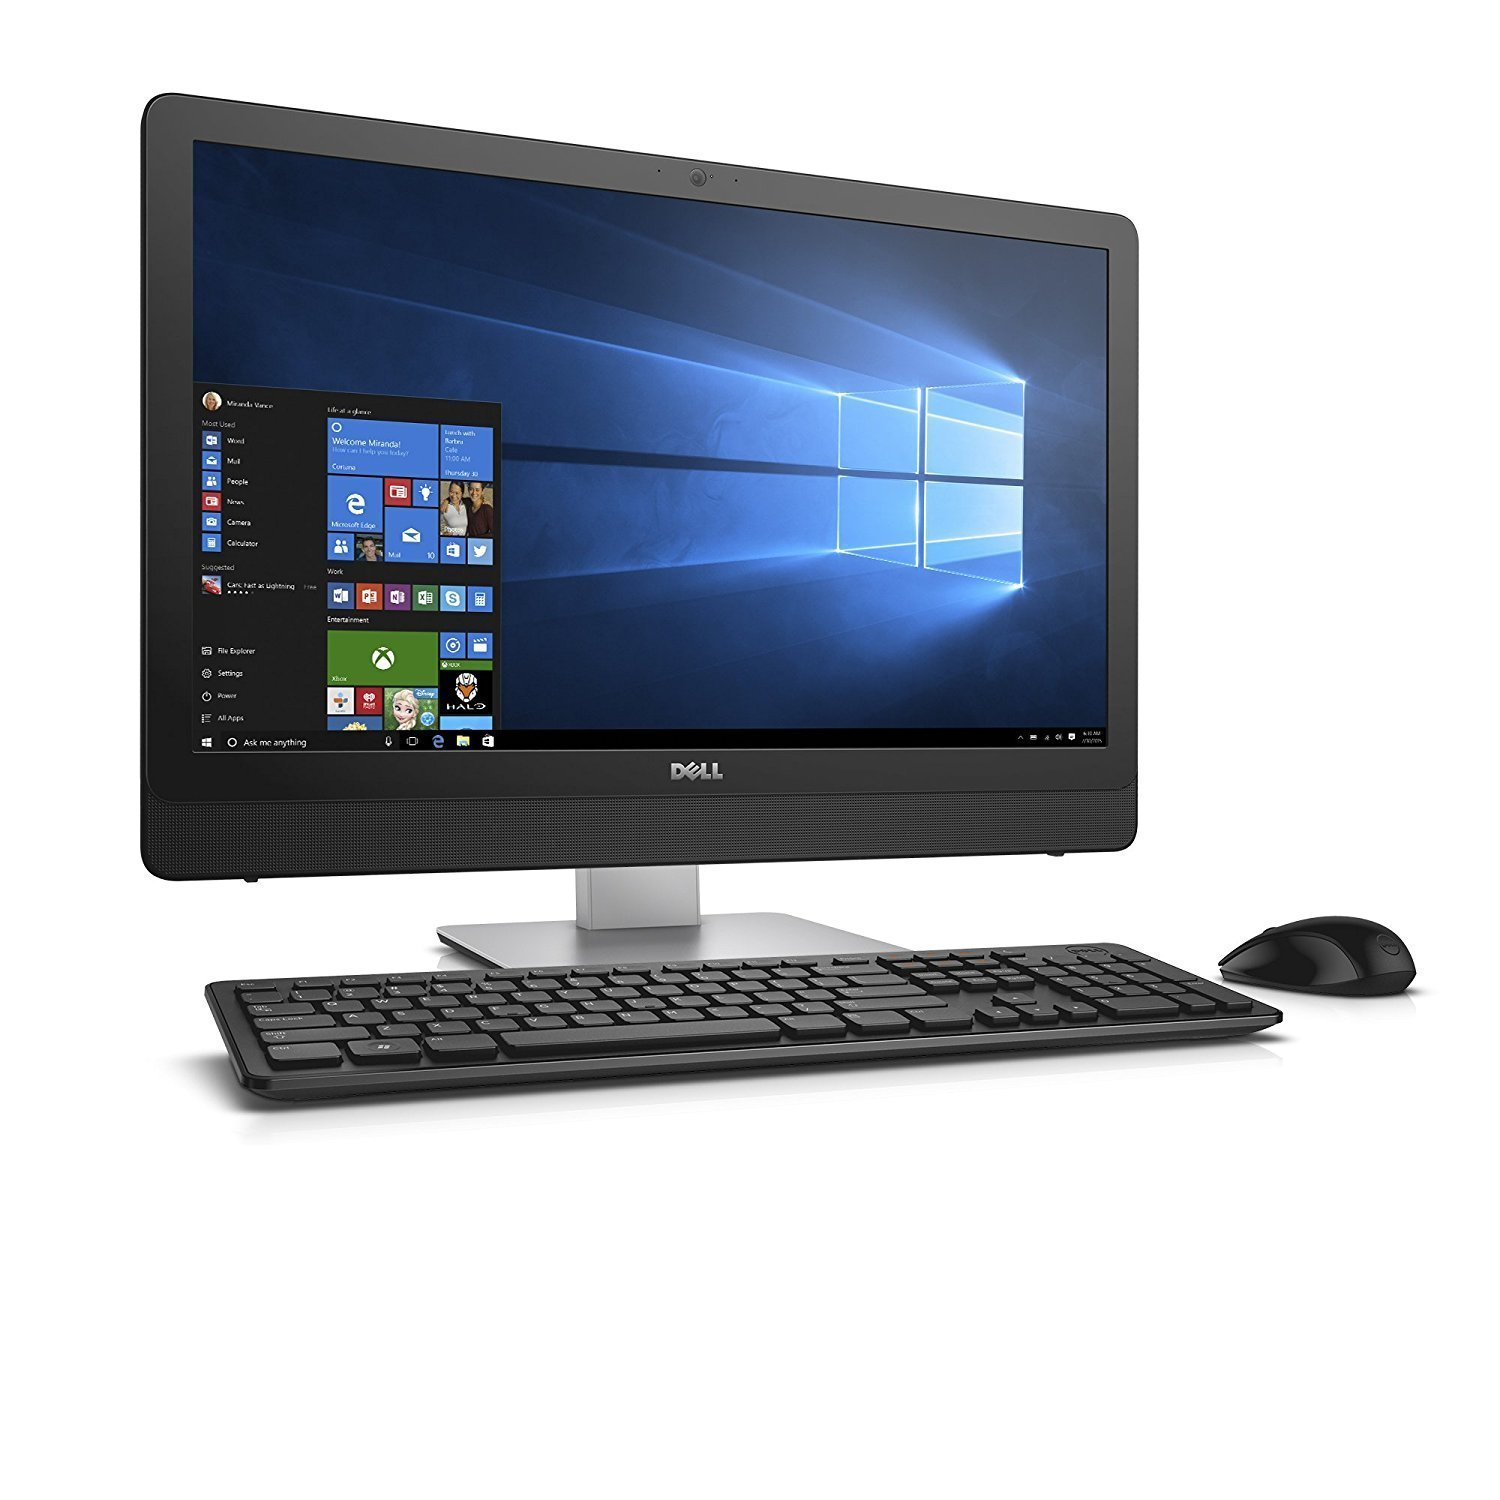 Dell Inspiron Flagship 23.8'' All-in-One Full HD Touchscreen Desktop - Intel Core i7-7500U up to 3.5GHz, 16GB DDR4, 1TB HDD, DVDRW, 802.11ac, Bluetooth, MaxxAudioR Pro, Webacm, Keyboard & Mouse, Win 10 by Dell (Image #3)